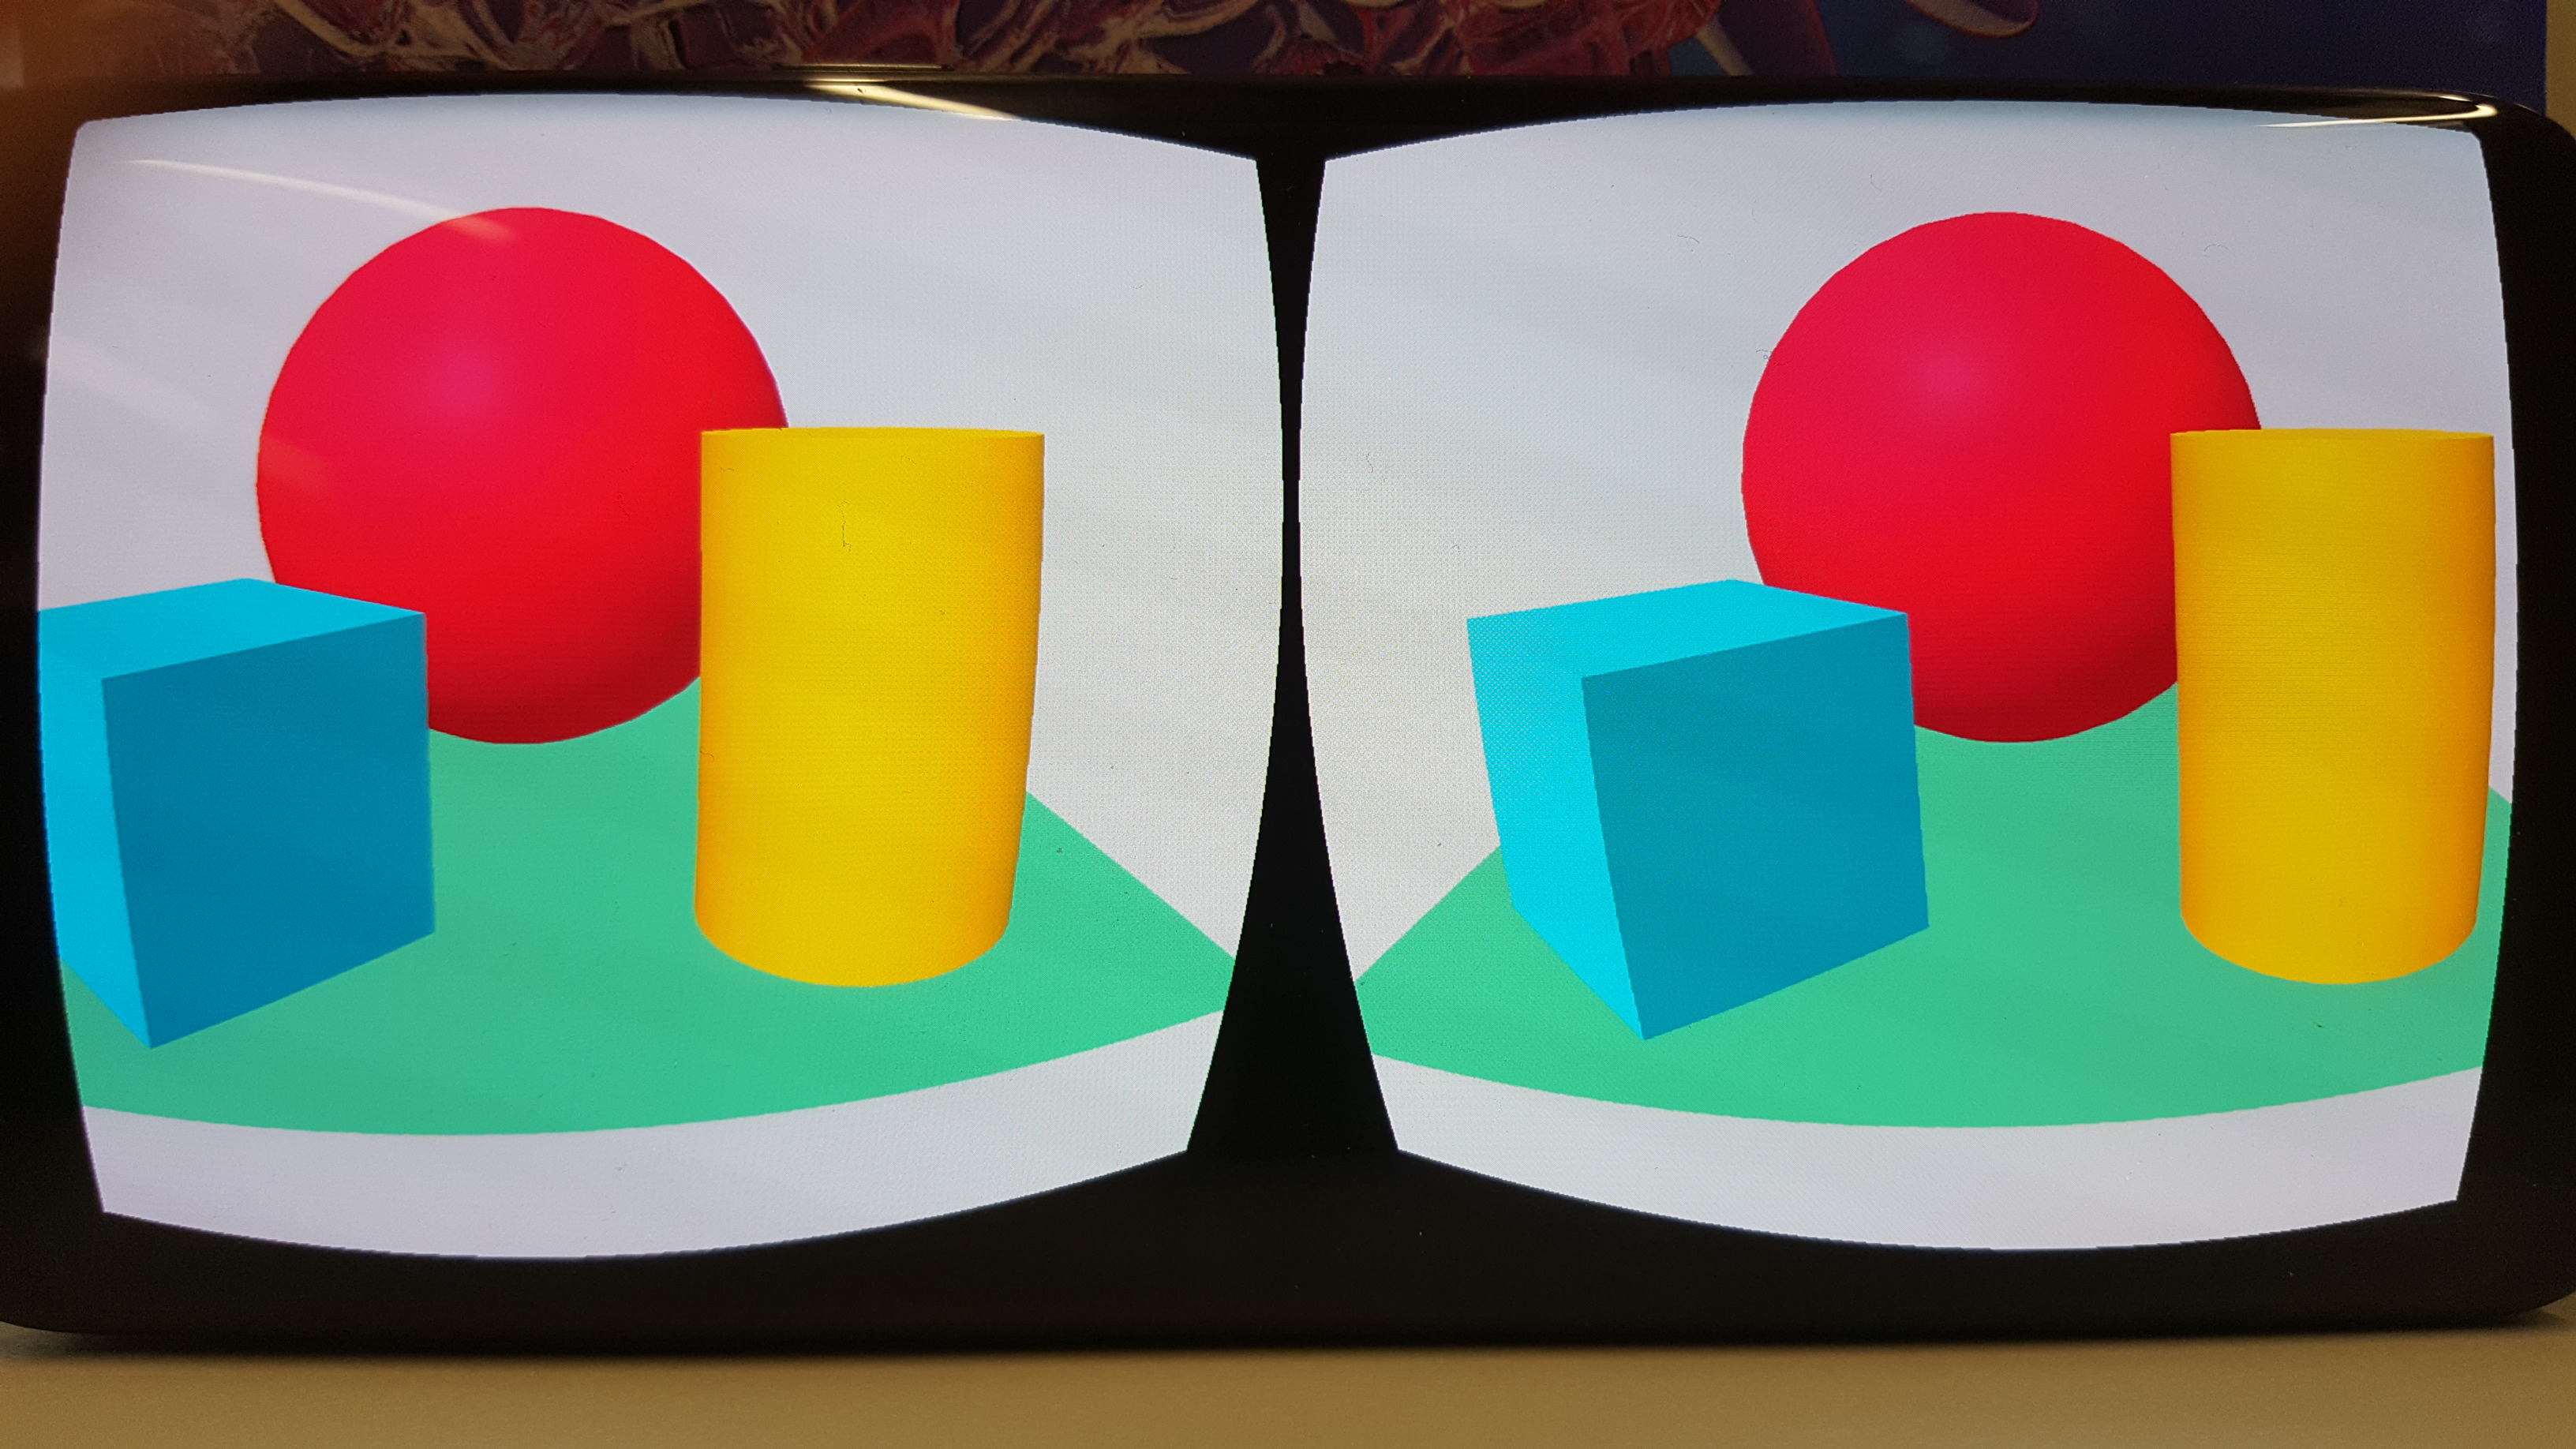 Samsung S8 device: double / blurry vision in VR (Cardboard